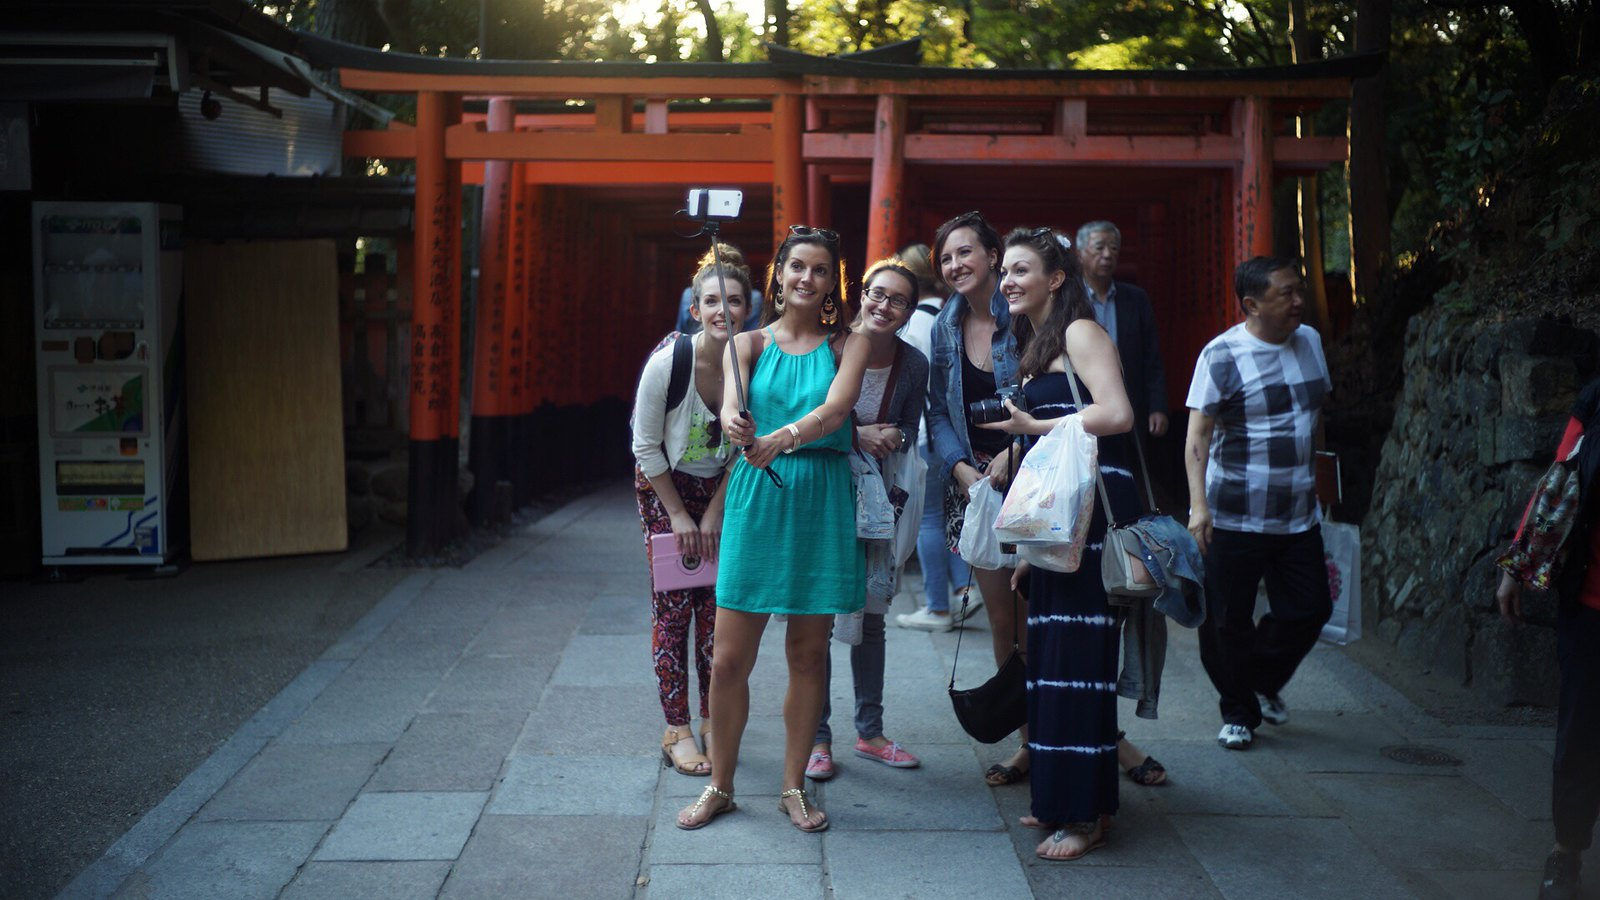 Lassies' Selfie Stick Group Photo. #SonyA7 #Voigtlander40mm #foto #japan15 #inari #Kyoto